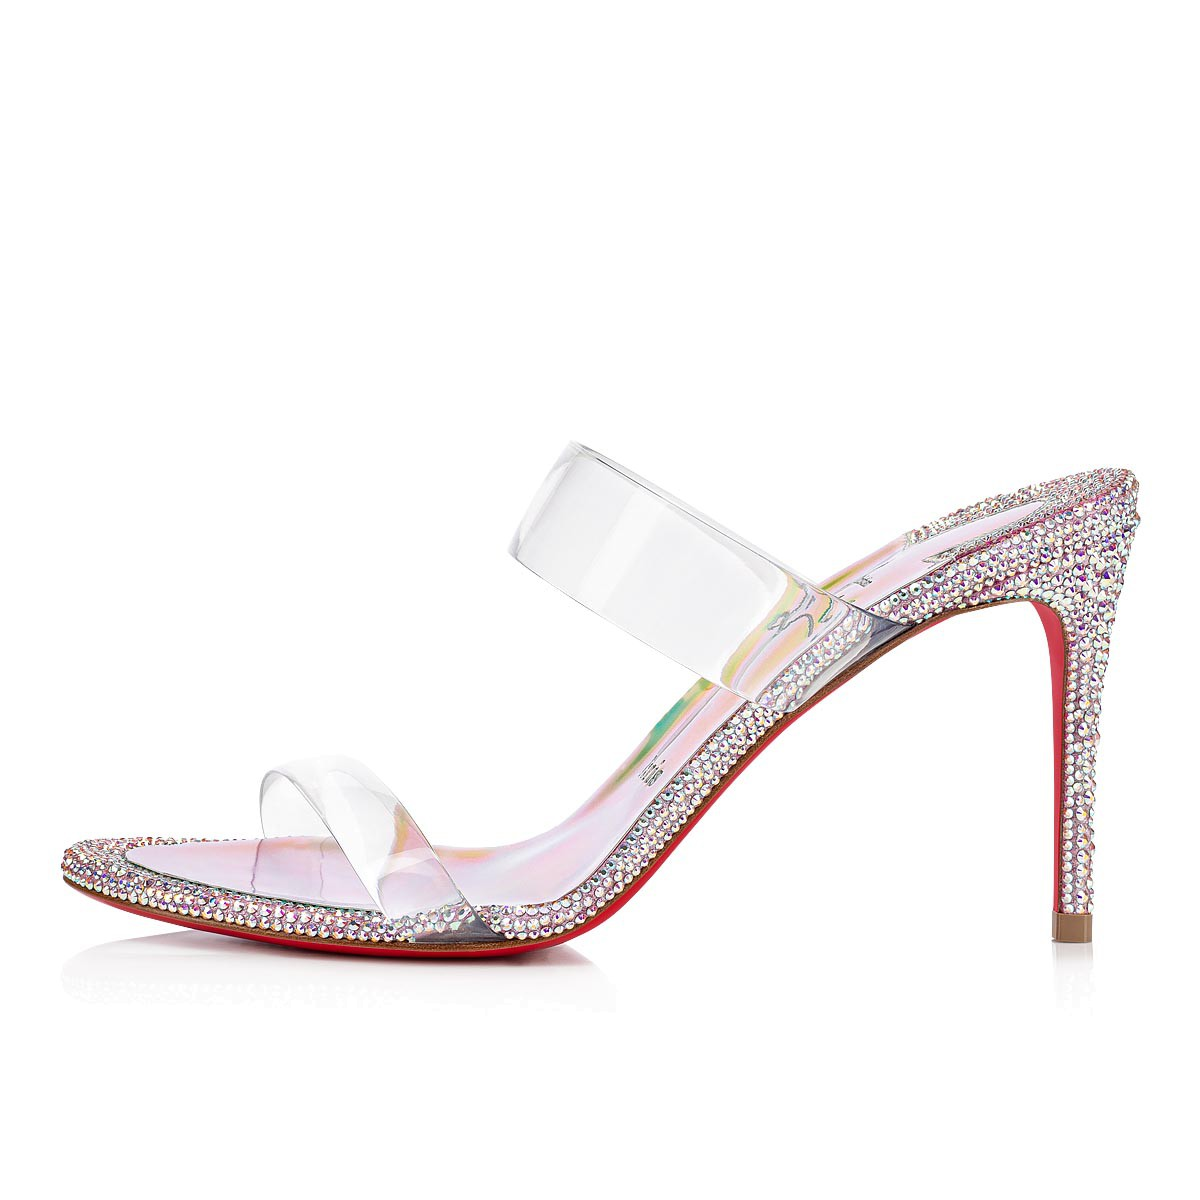 Shoes - Just Strass - Christian Louboutin